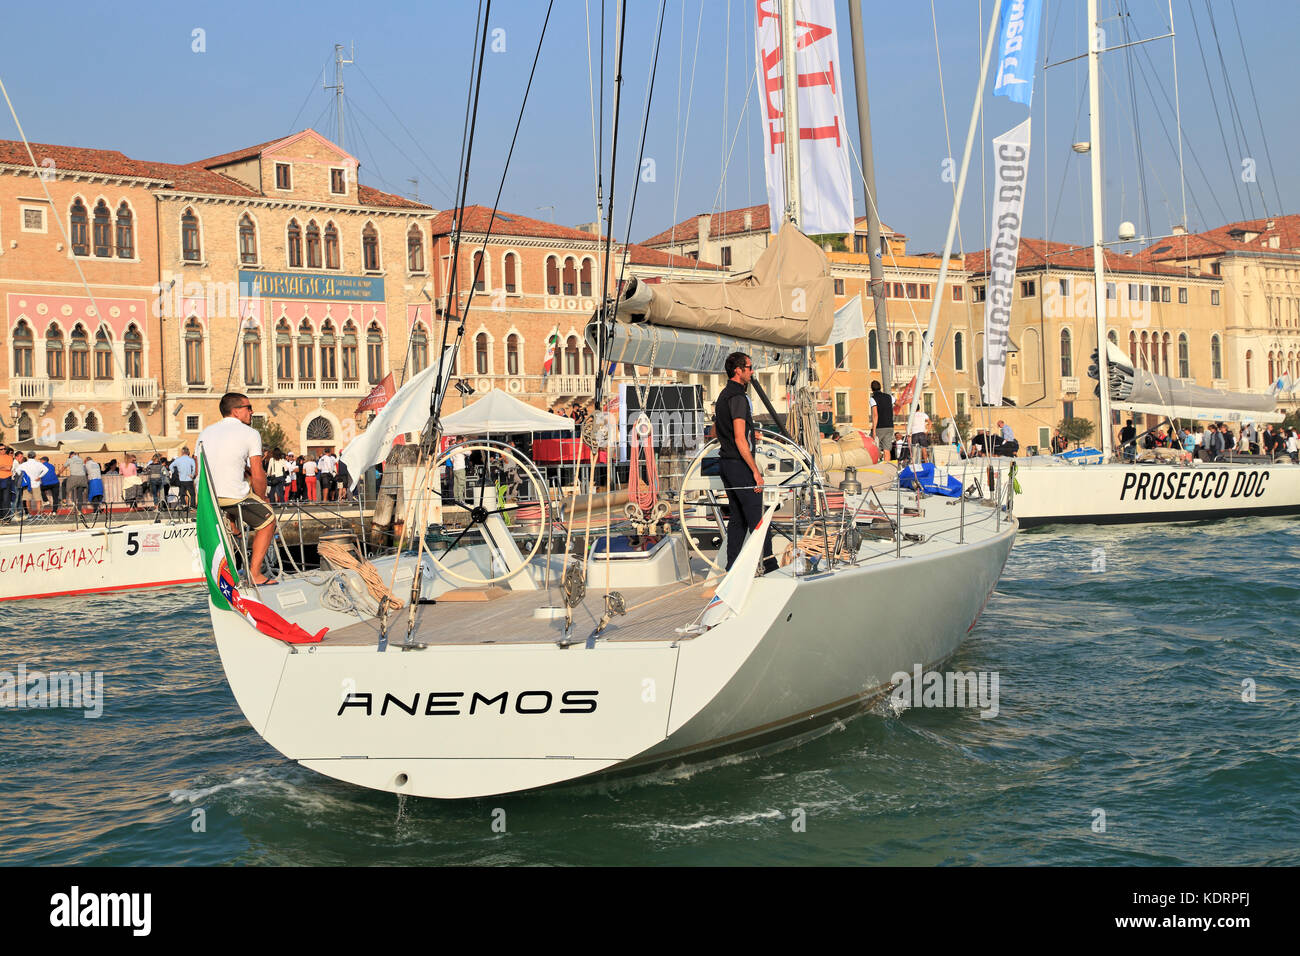 Sailing maxi yacht Anemos at the Venice Hospitality Challenge 2017 - Stock Image